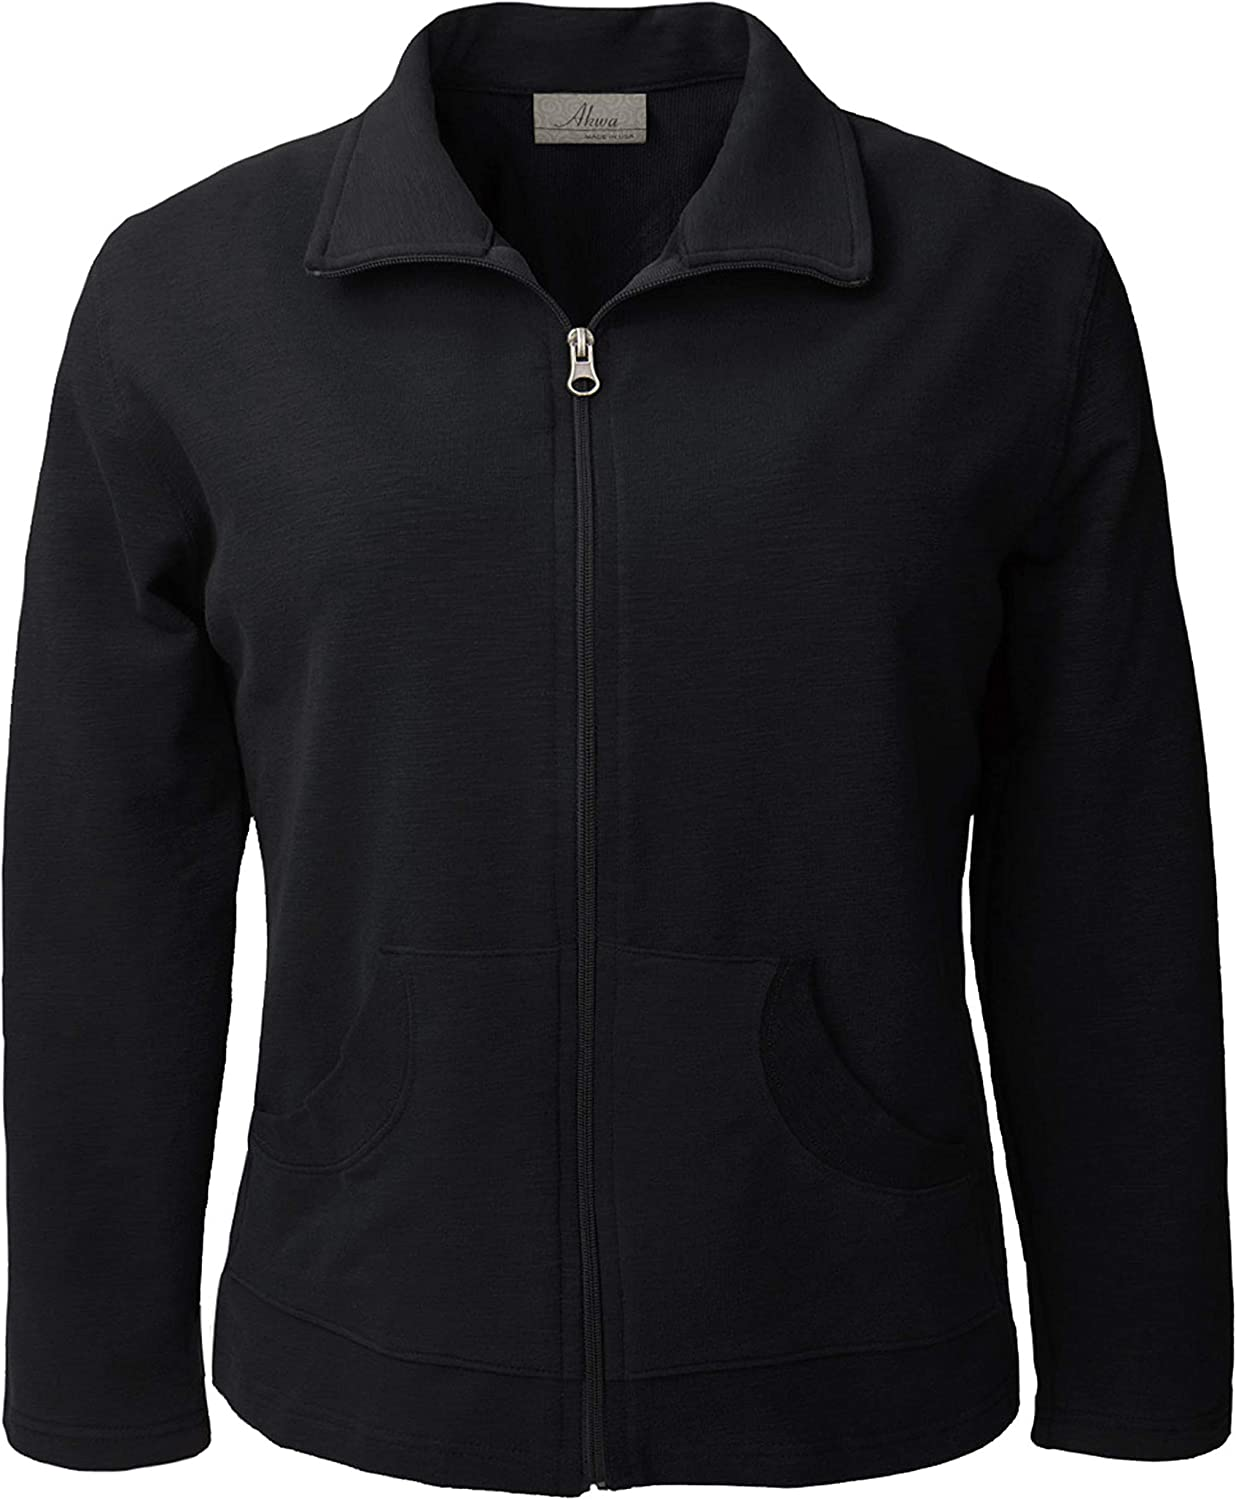 Akwa Women's Rapid rise Long Sleeve Full Zip in Made Jacket Lightweight USA Cash special price